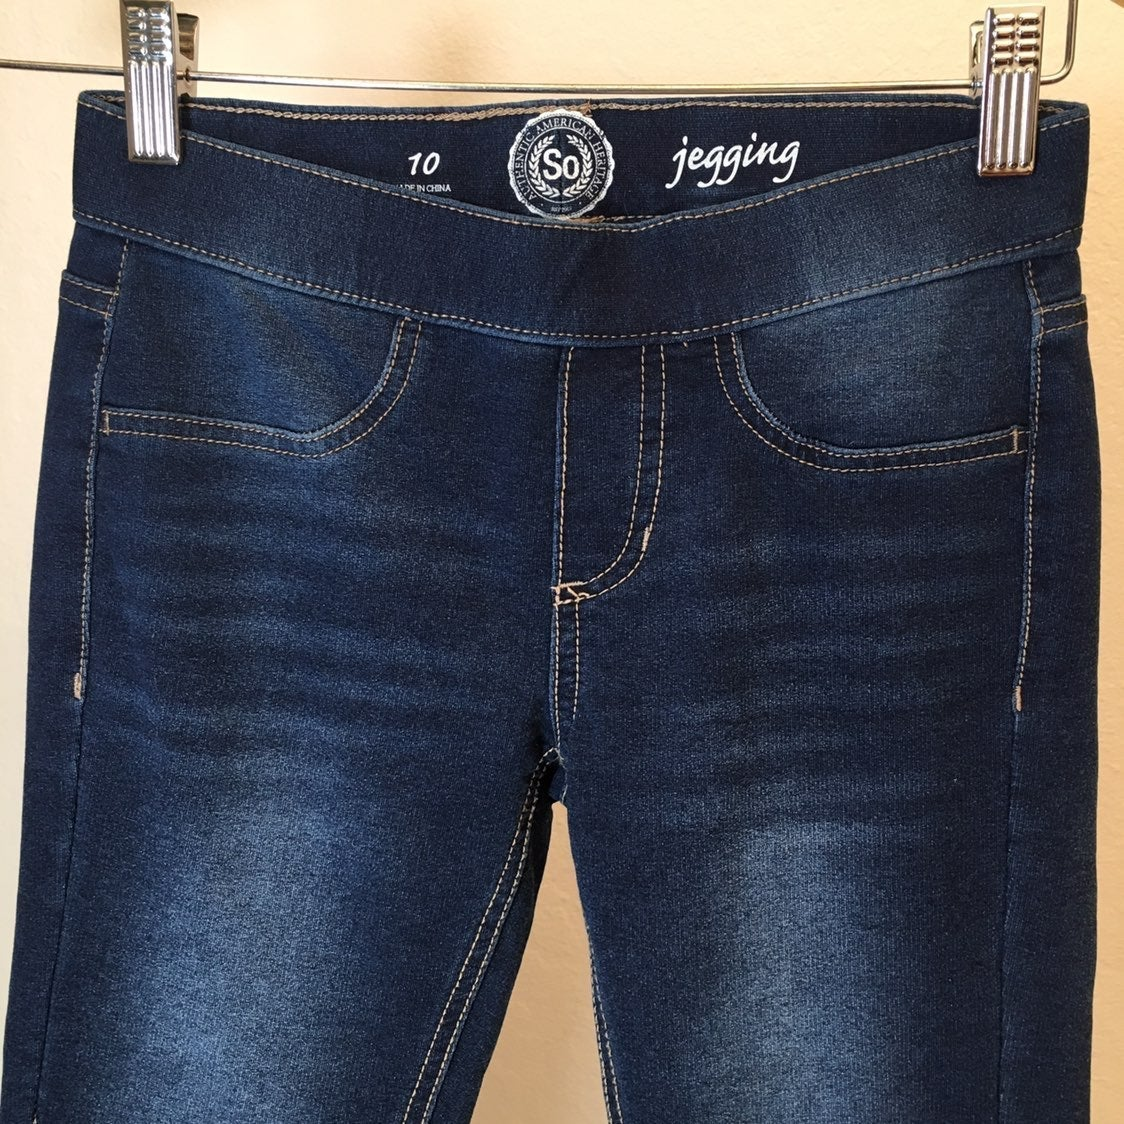 Jeggings - Authentic American Heritage